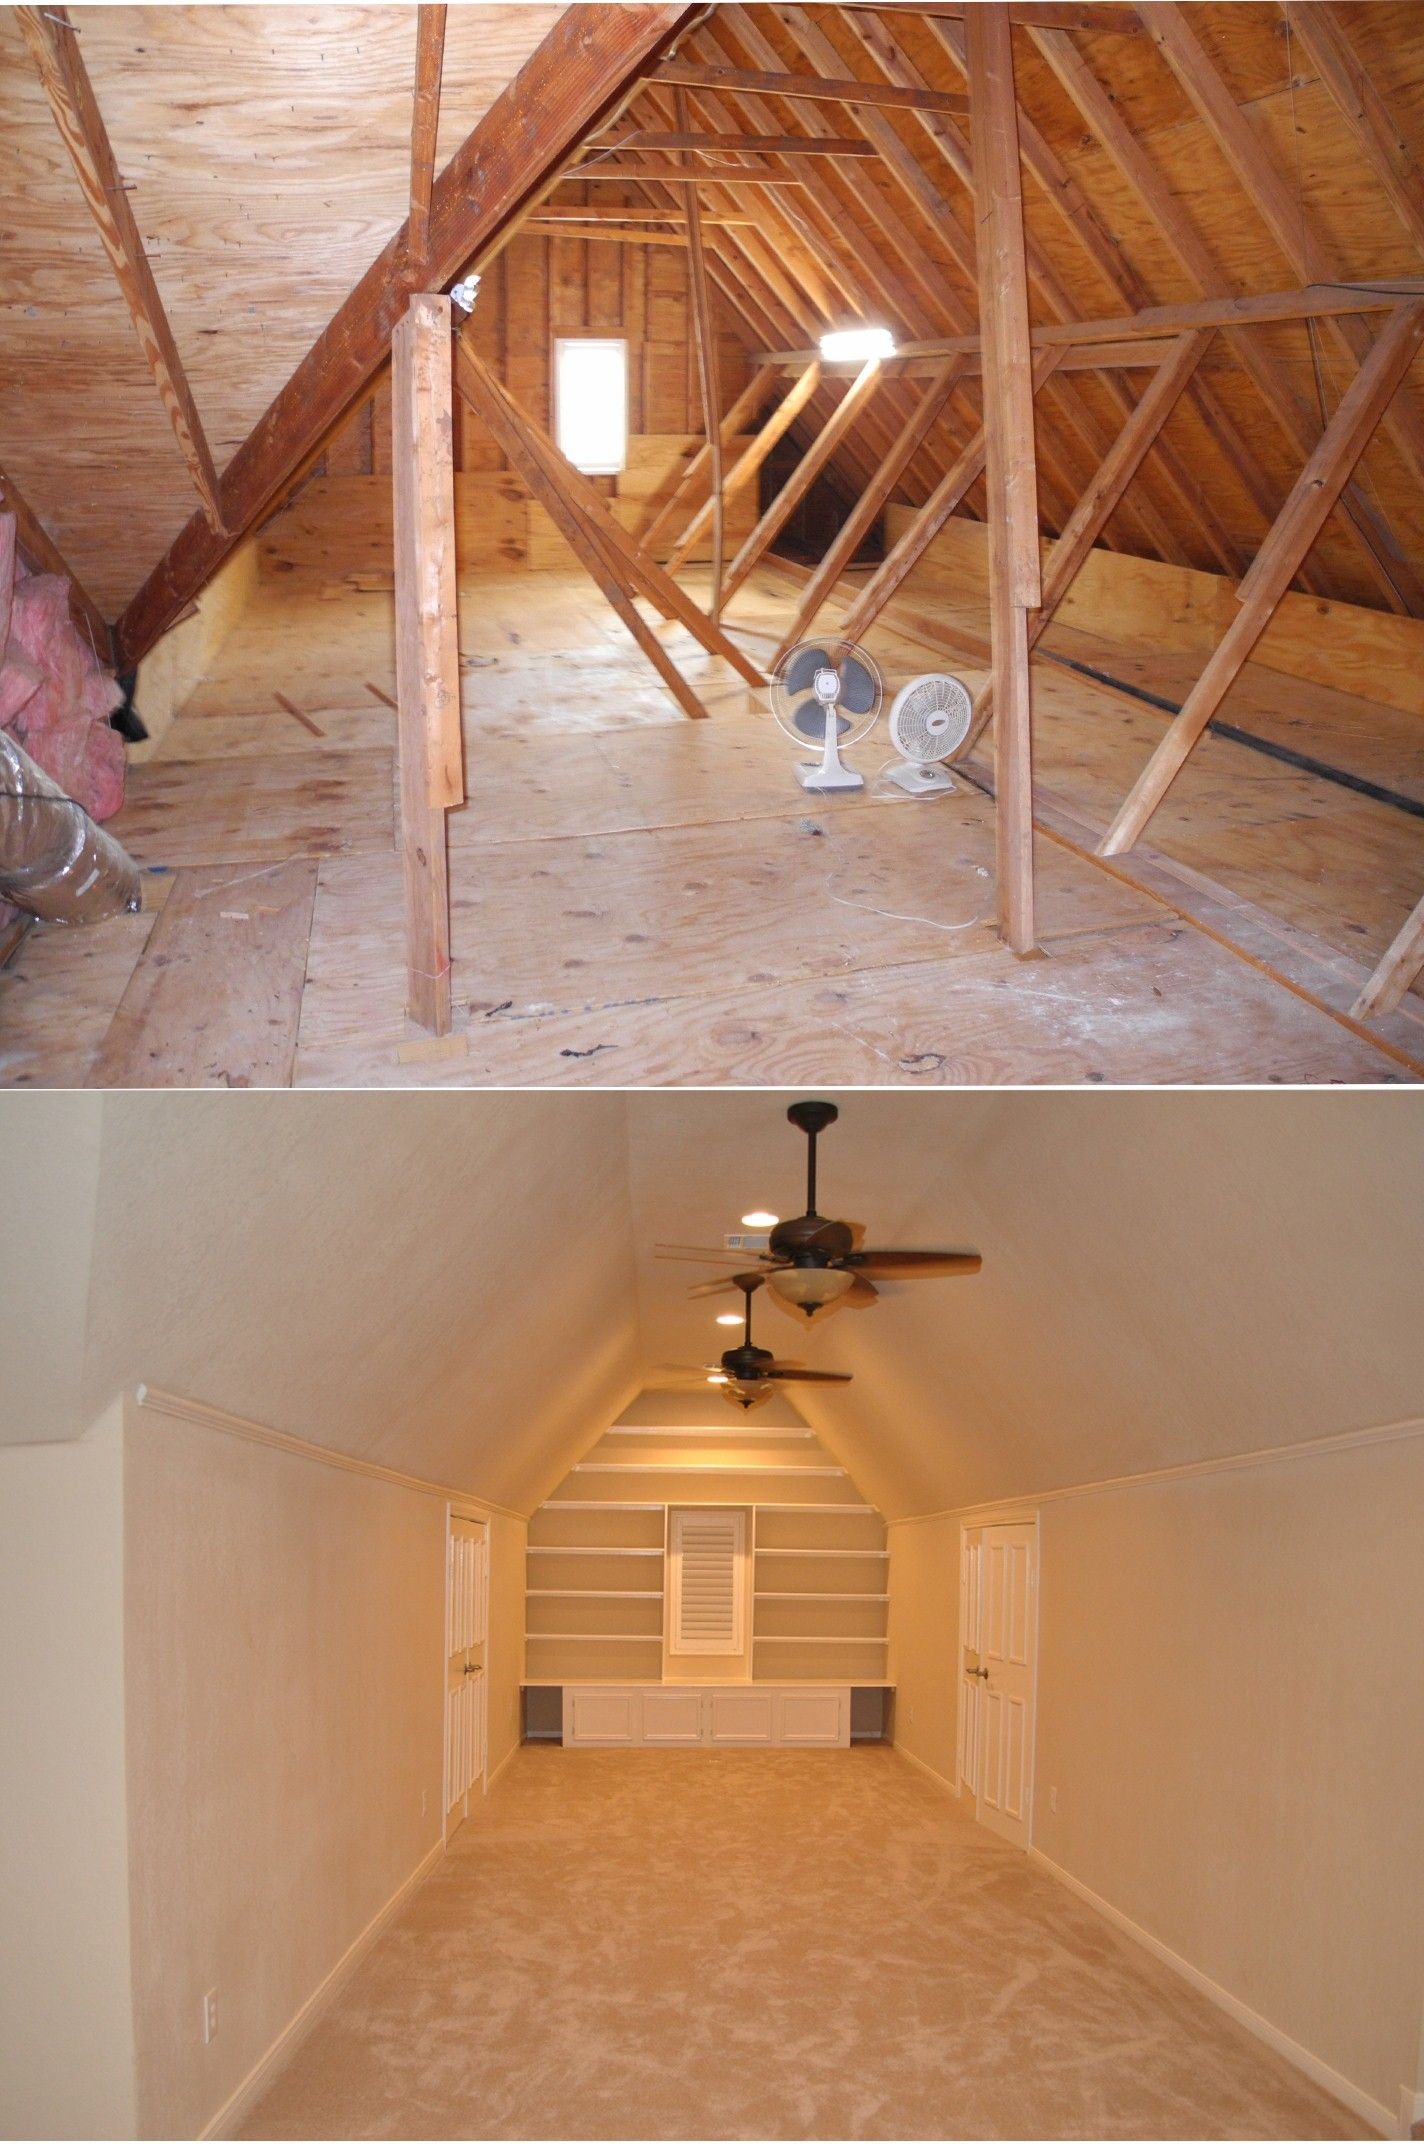 Our Attic Renovation Craft And Media Area With Storage Closets Flanking Both Sides Attic Remodel Attic Renovation Attic Apartment